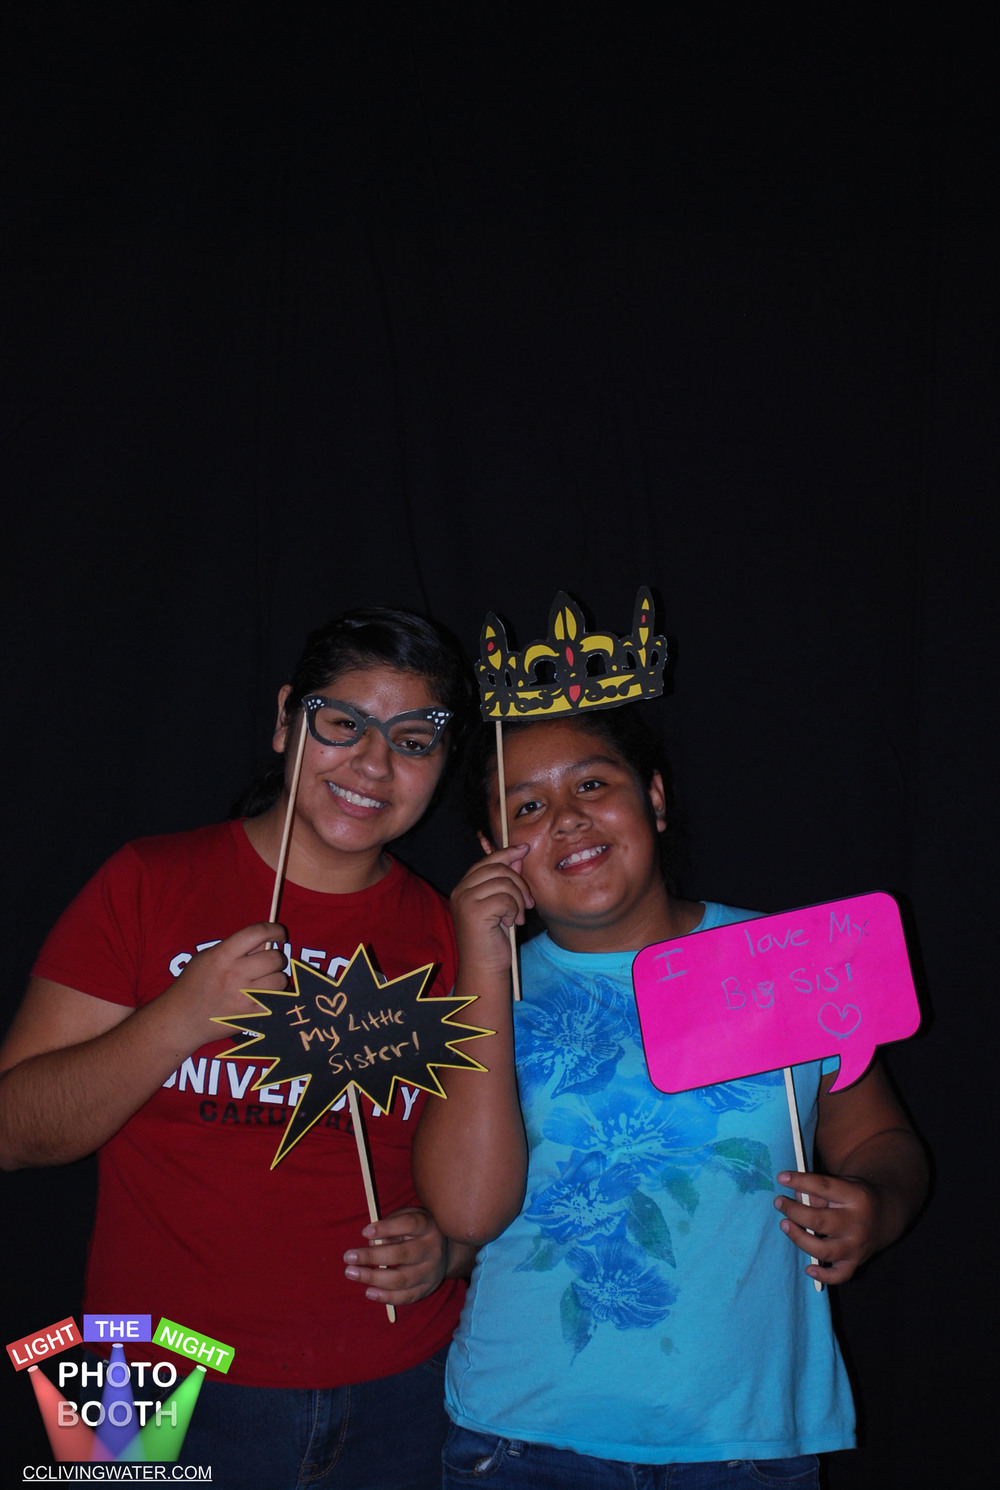 2014-10 - Light The Night Photo Booth (280) copy.jpg